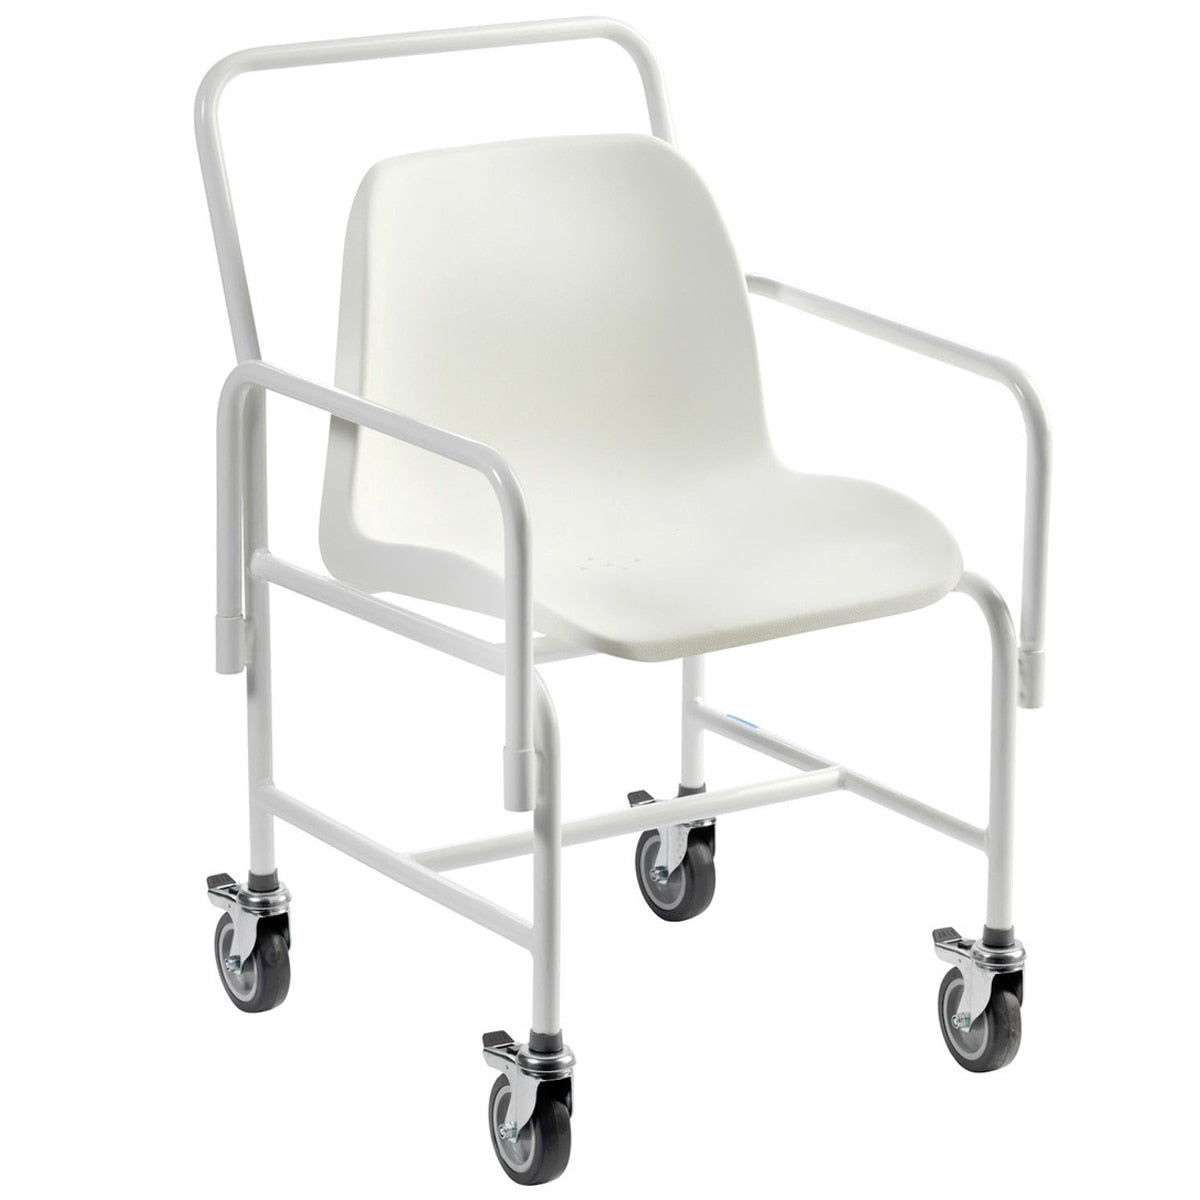 Hallaton Mobile Braked Fixed Height Shower Chair